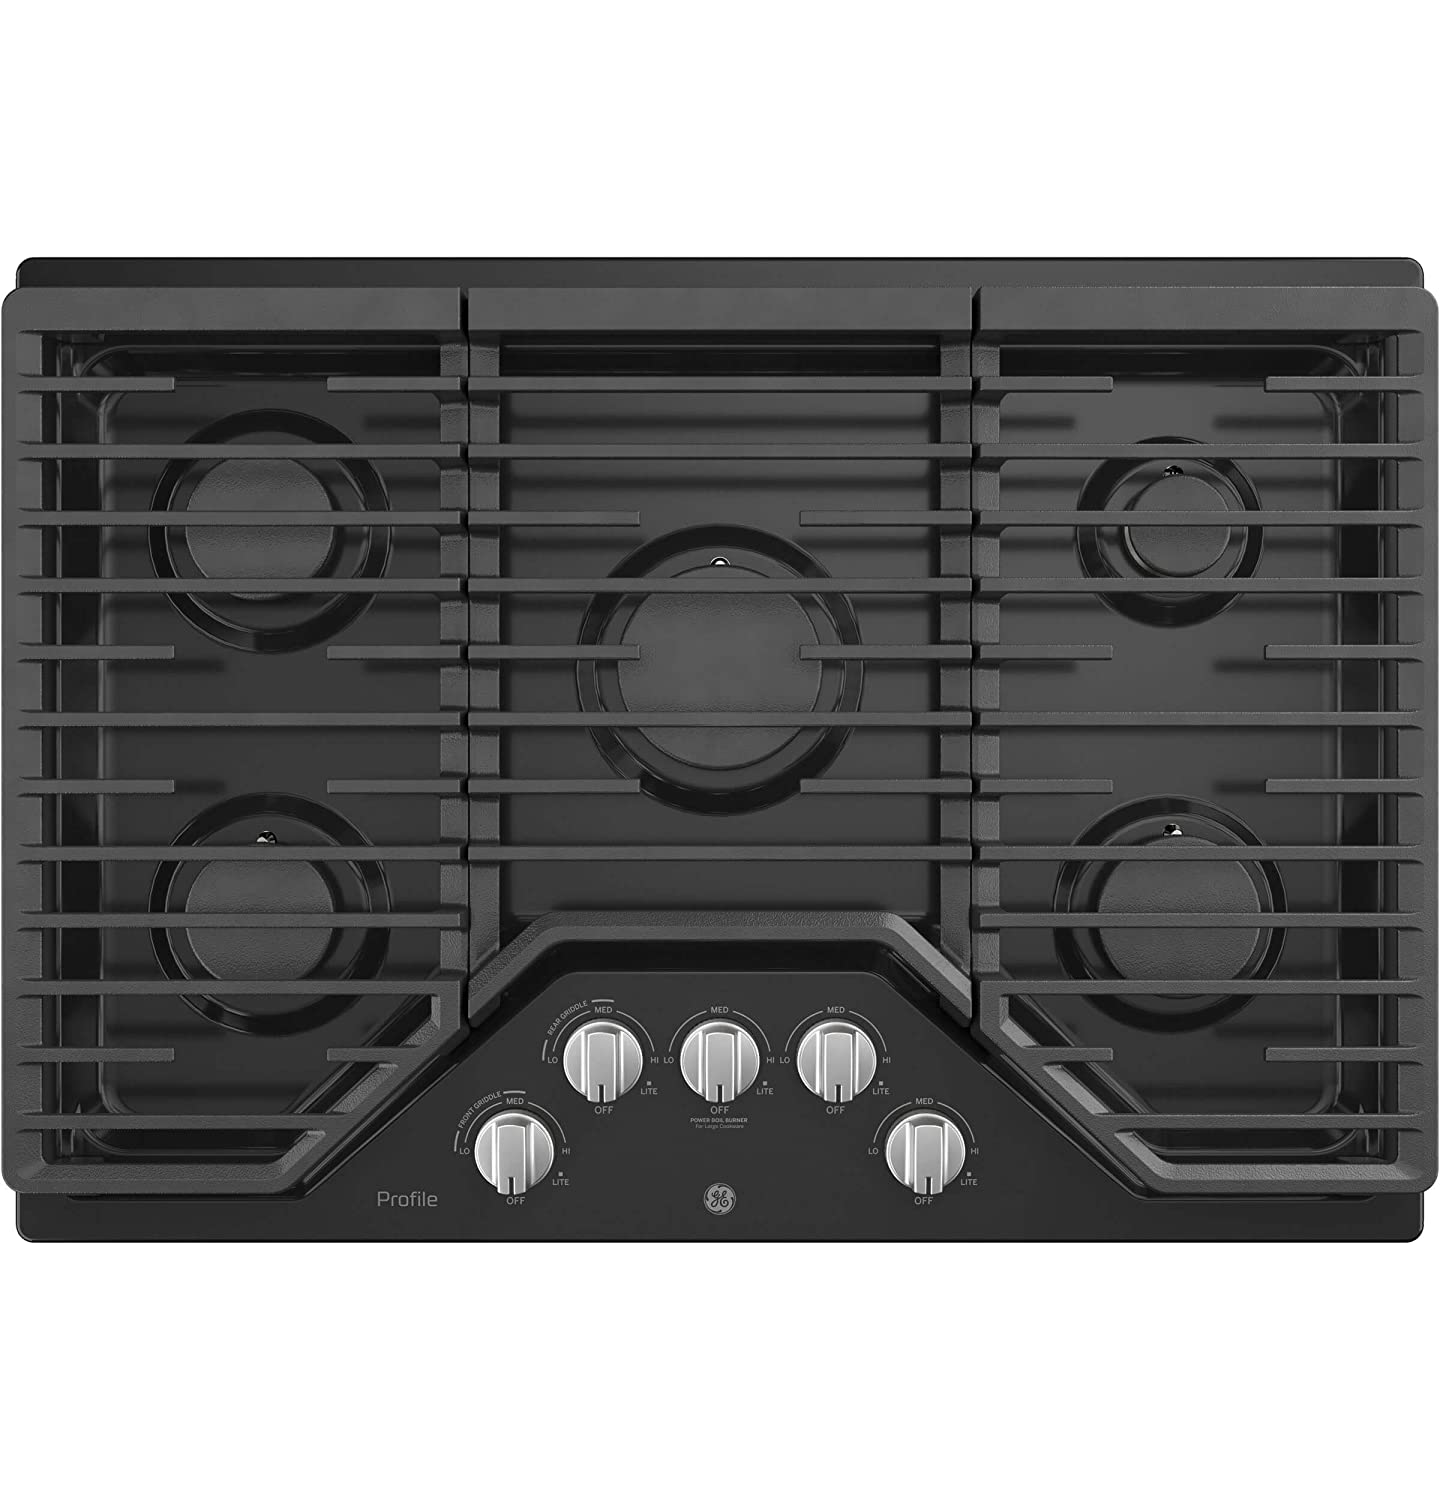 GE Profile PGP7030DLBB 30 Inch Natural Gas Sealed Burner Style Cooktop with 5 Burners, ADA Compliant, Electronic Ignition in Black G.E. Profile